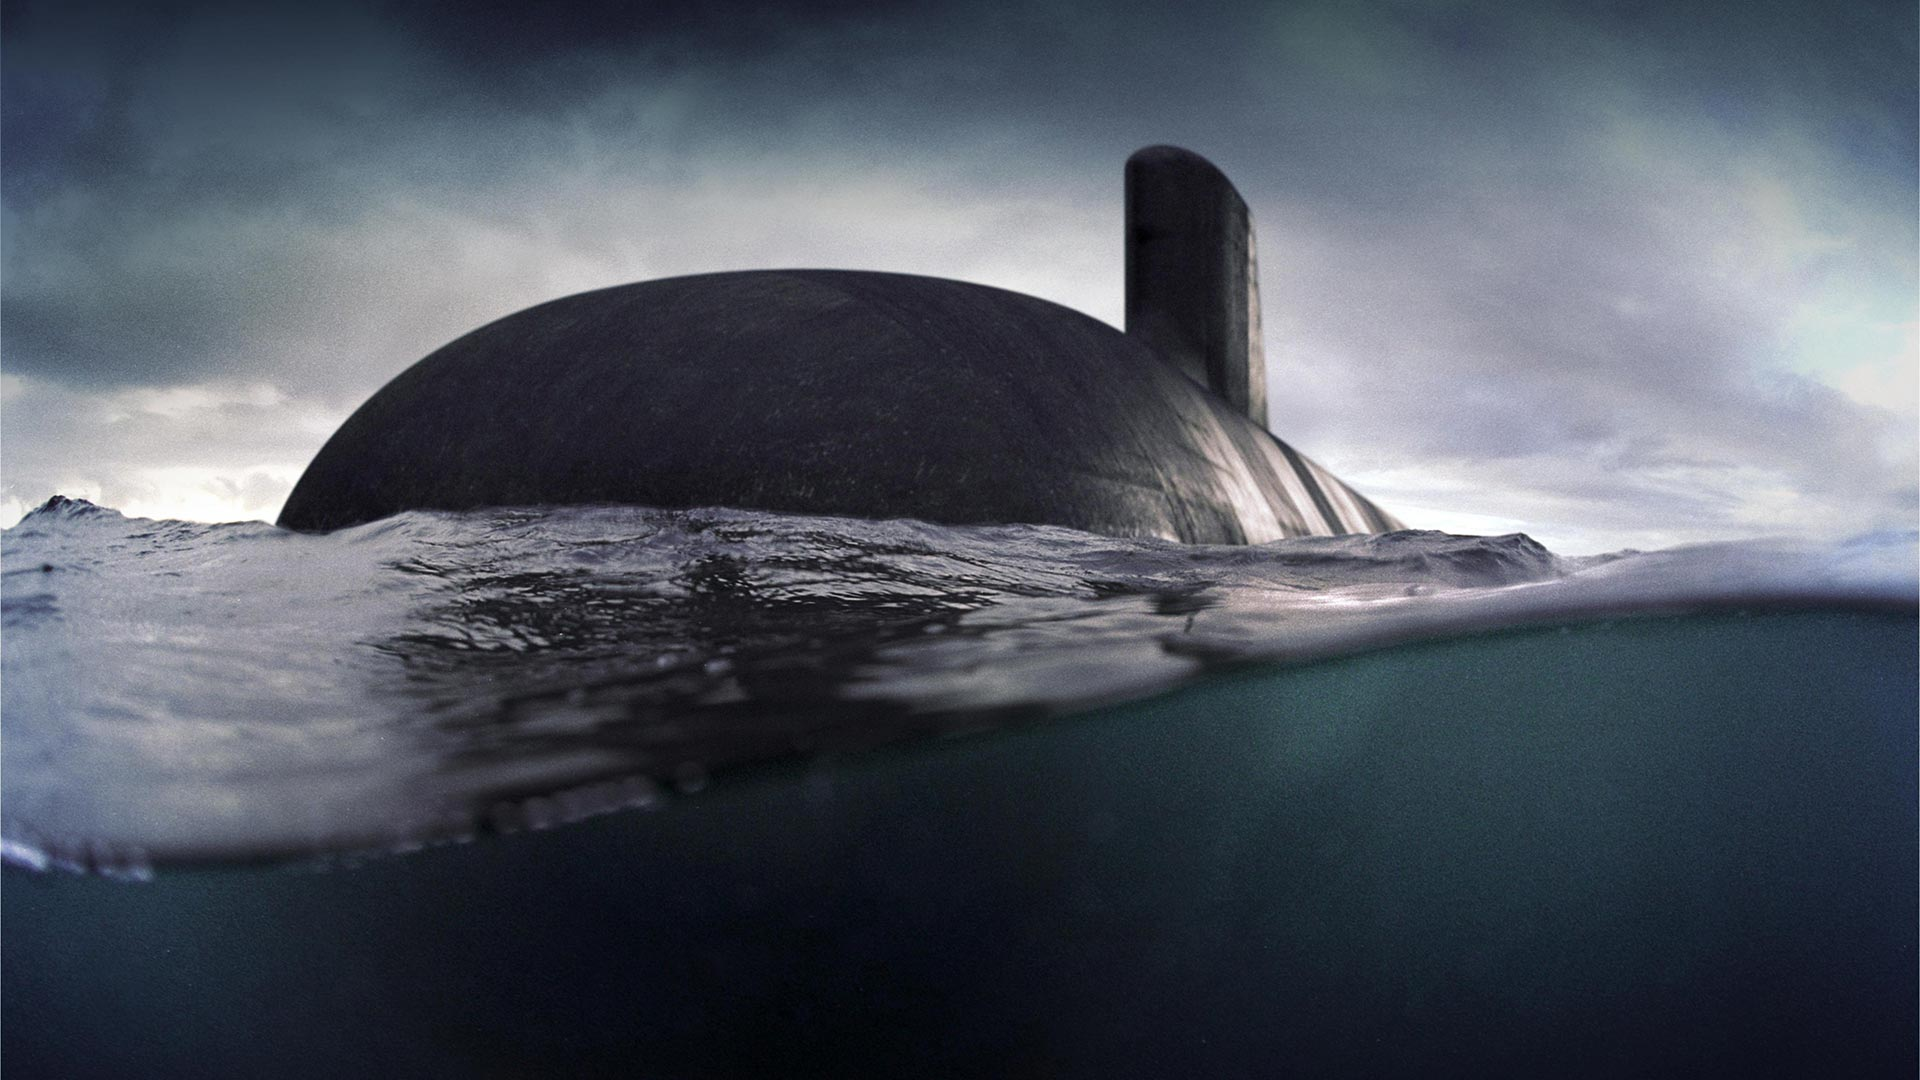 Submarine at sea viewed from water level